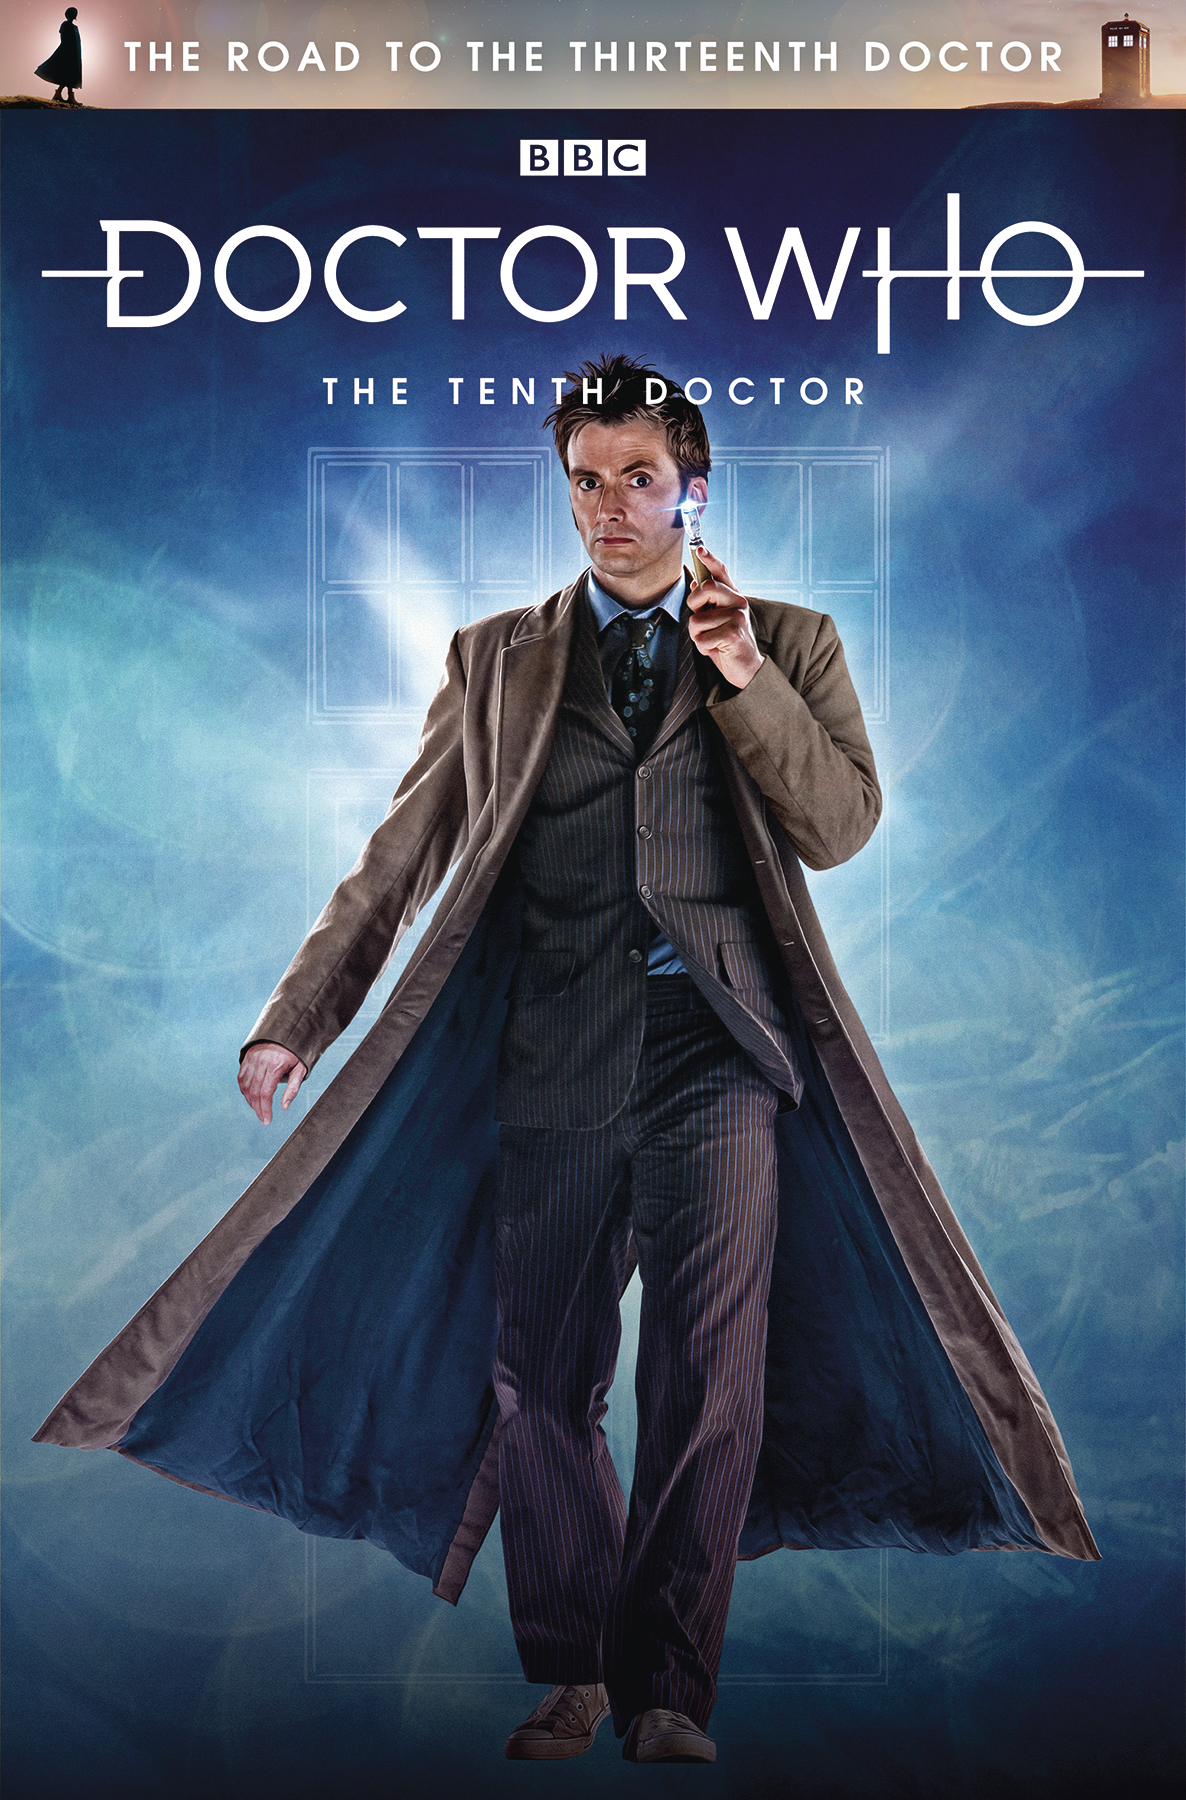 DOCTOR WHO ROAD TO 13TH DR 10TH DR SPECIAL #1 CVR B PHOTO